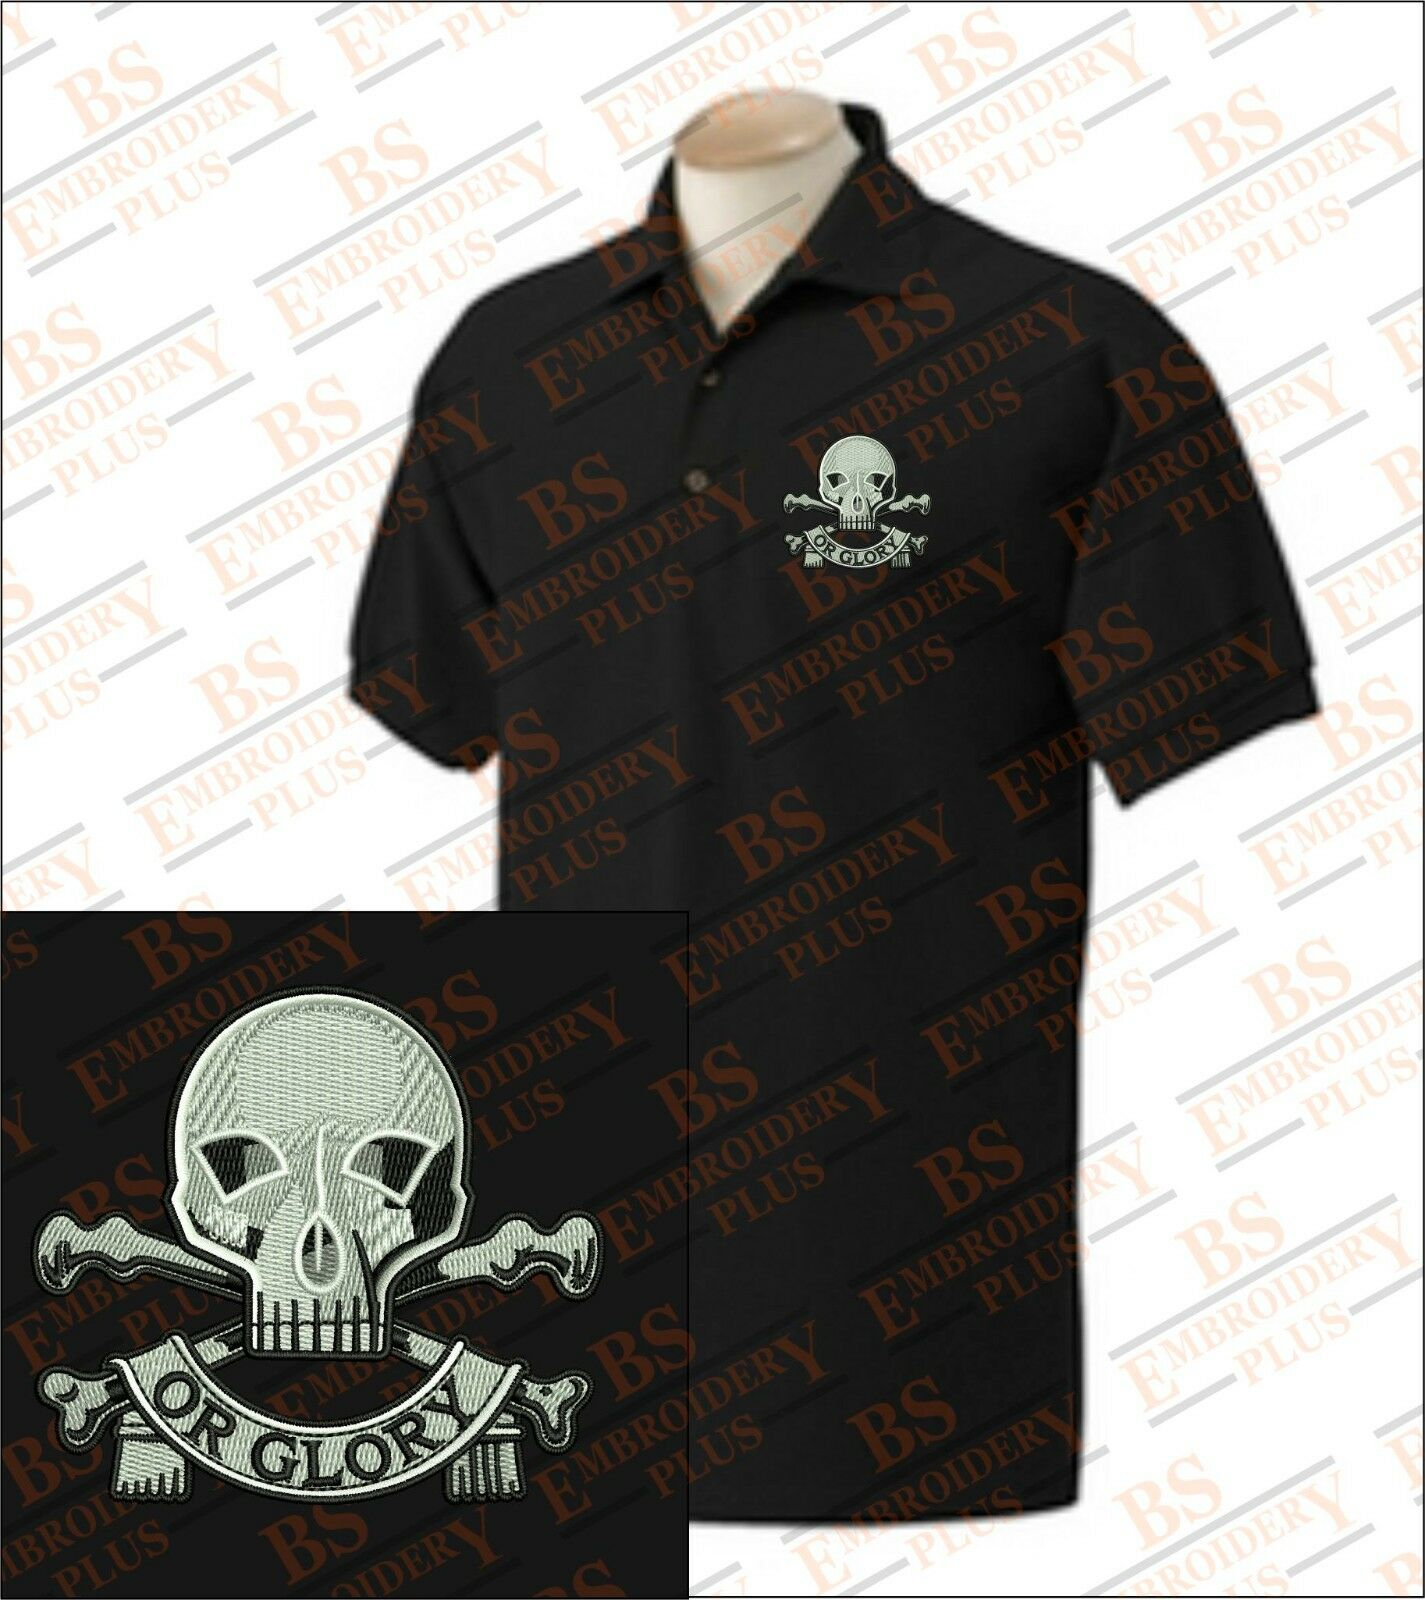 17th 21st Lancers Embroidered Polo Shirts